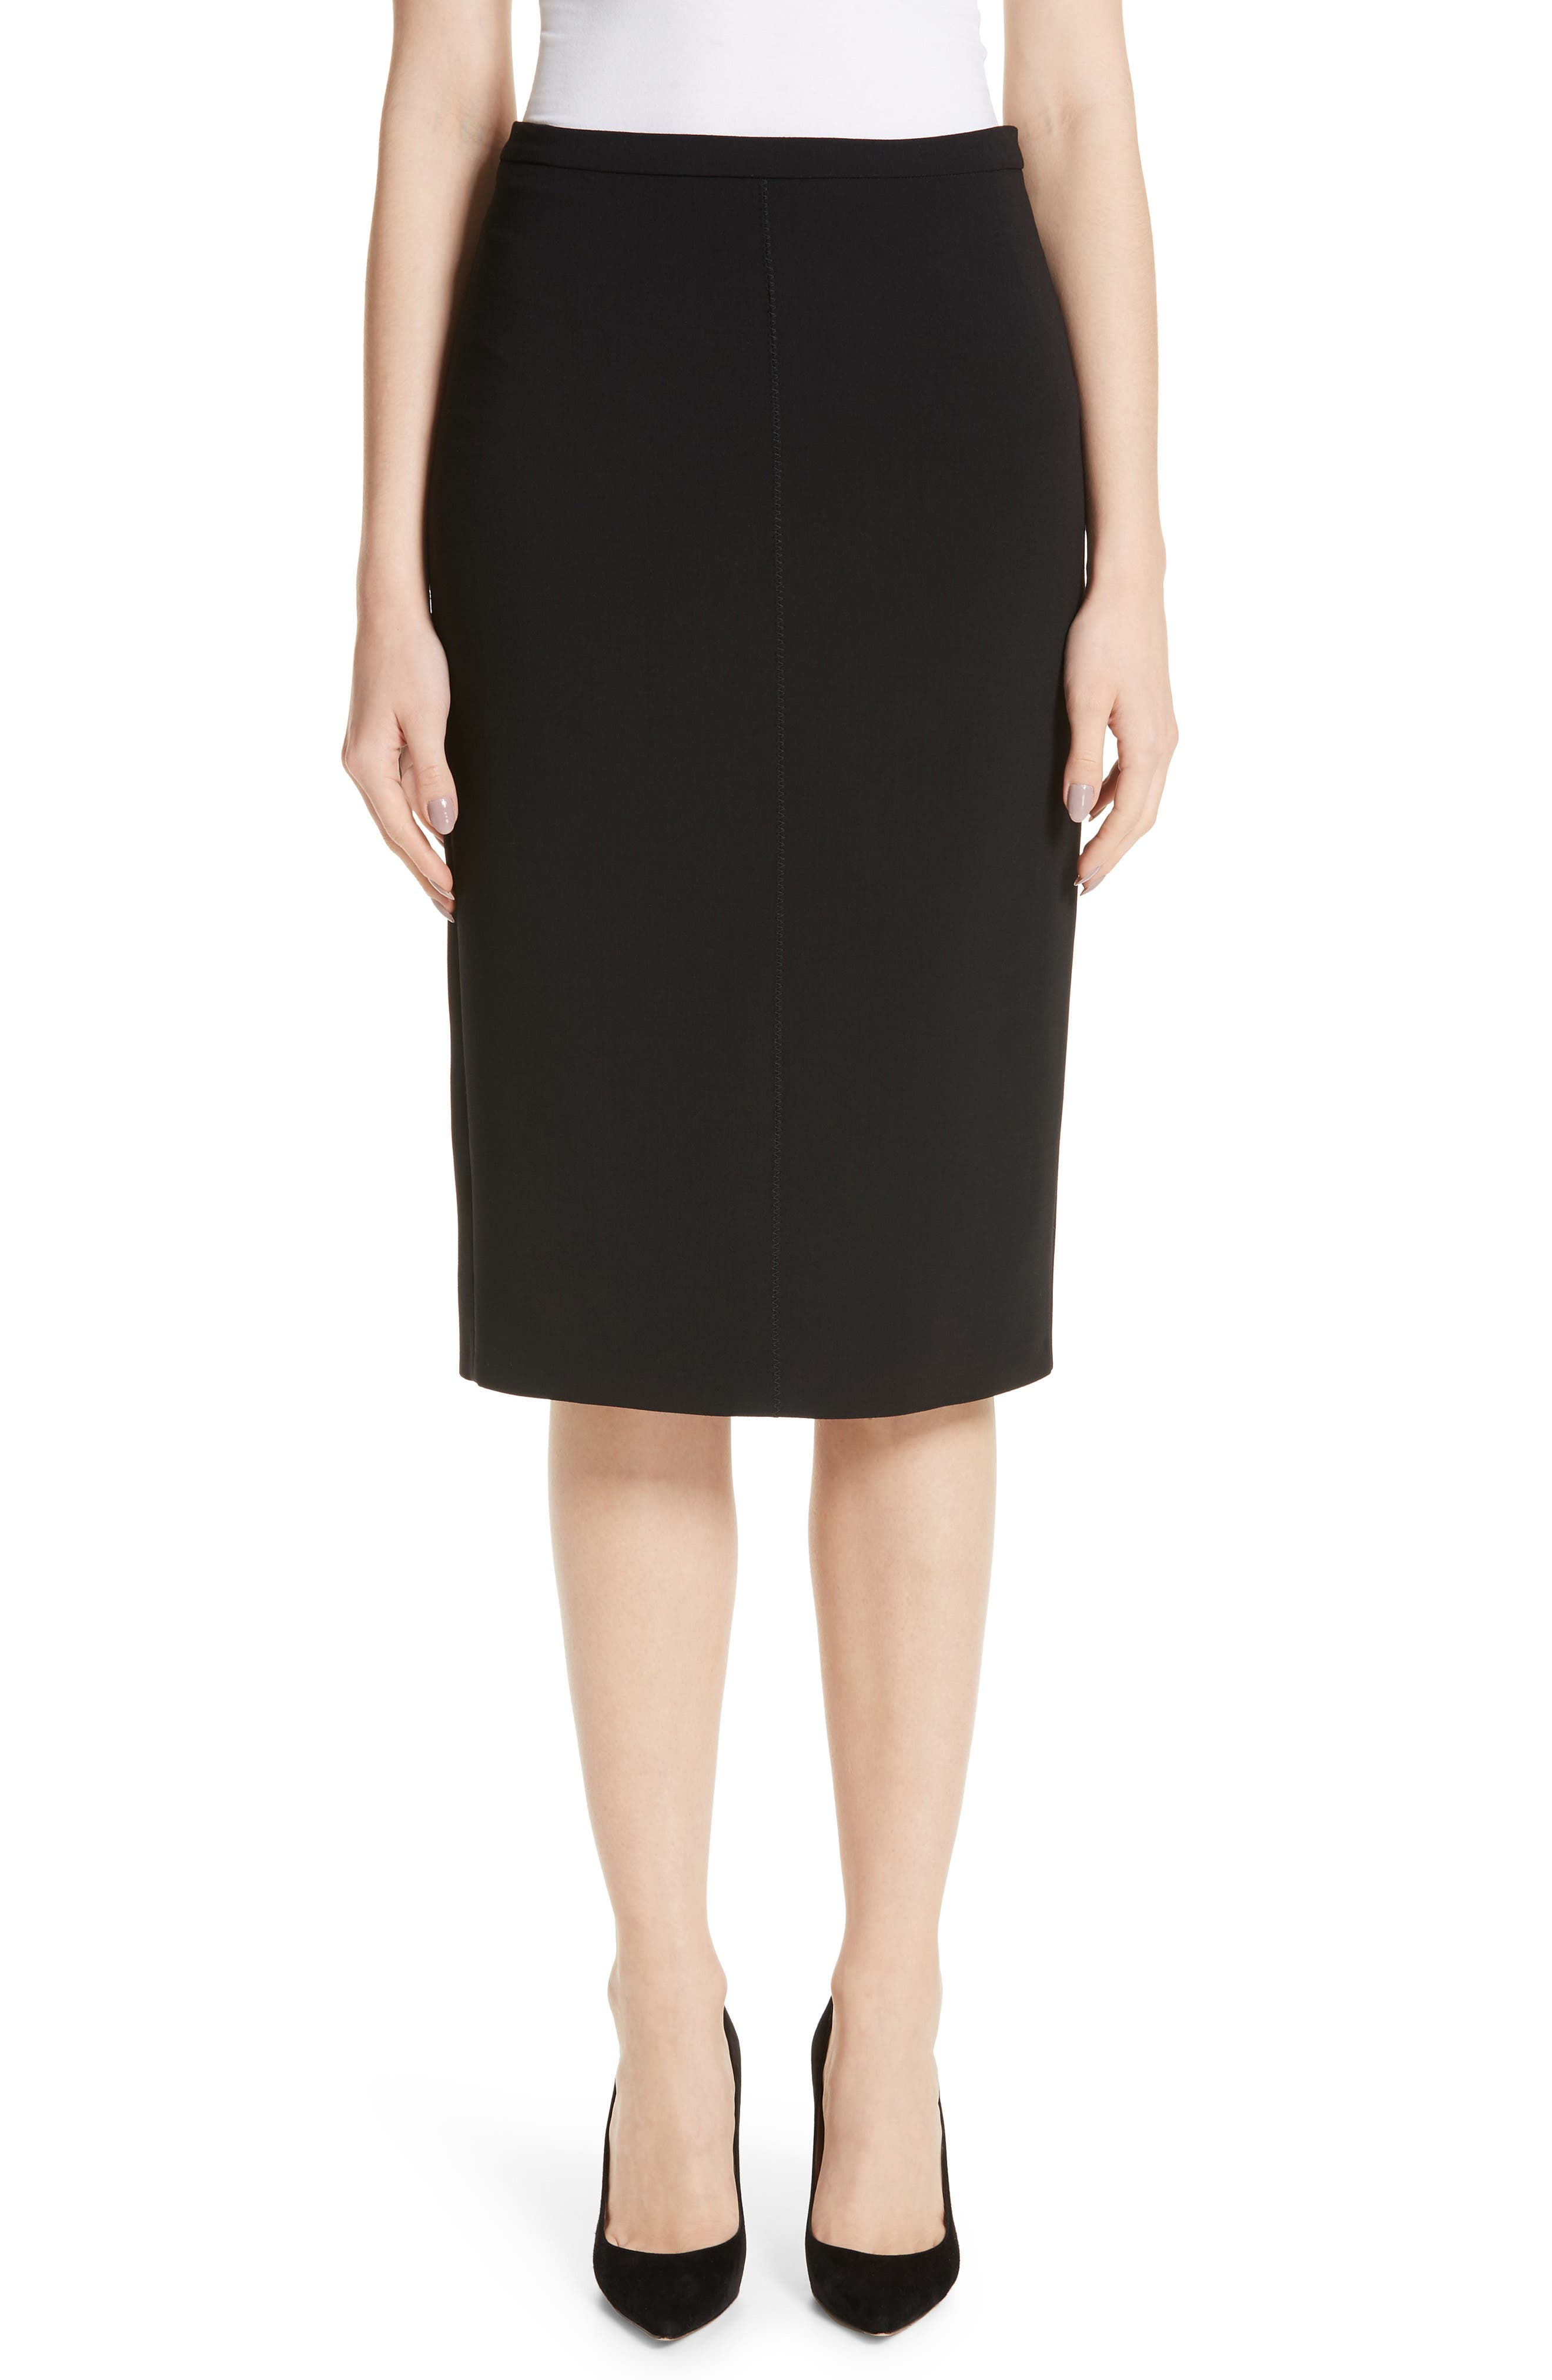 Ornati Pleat Back Skirt in Black